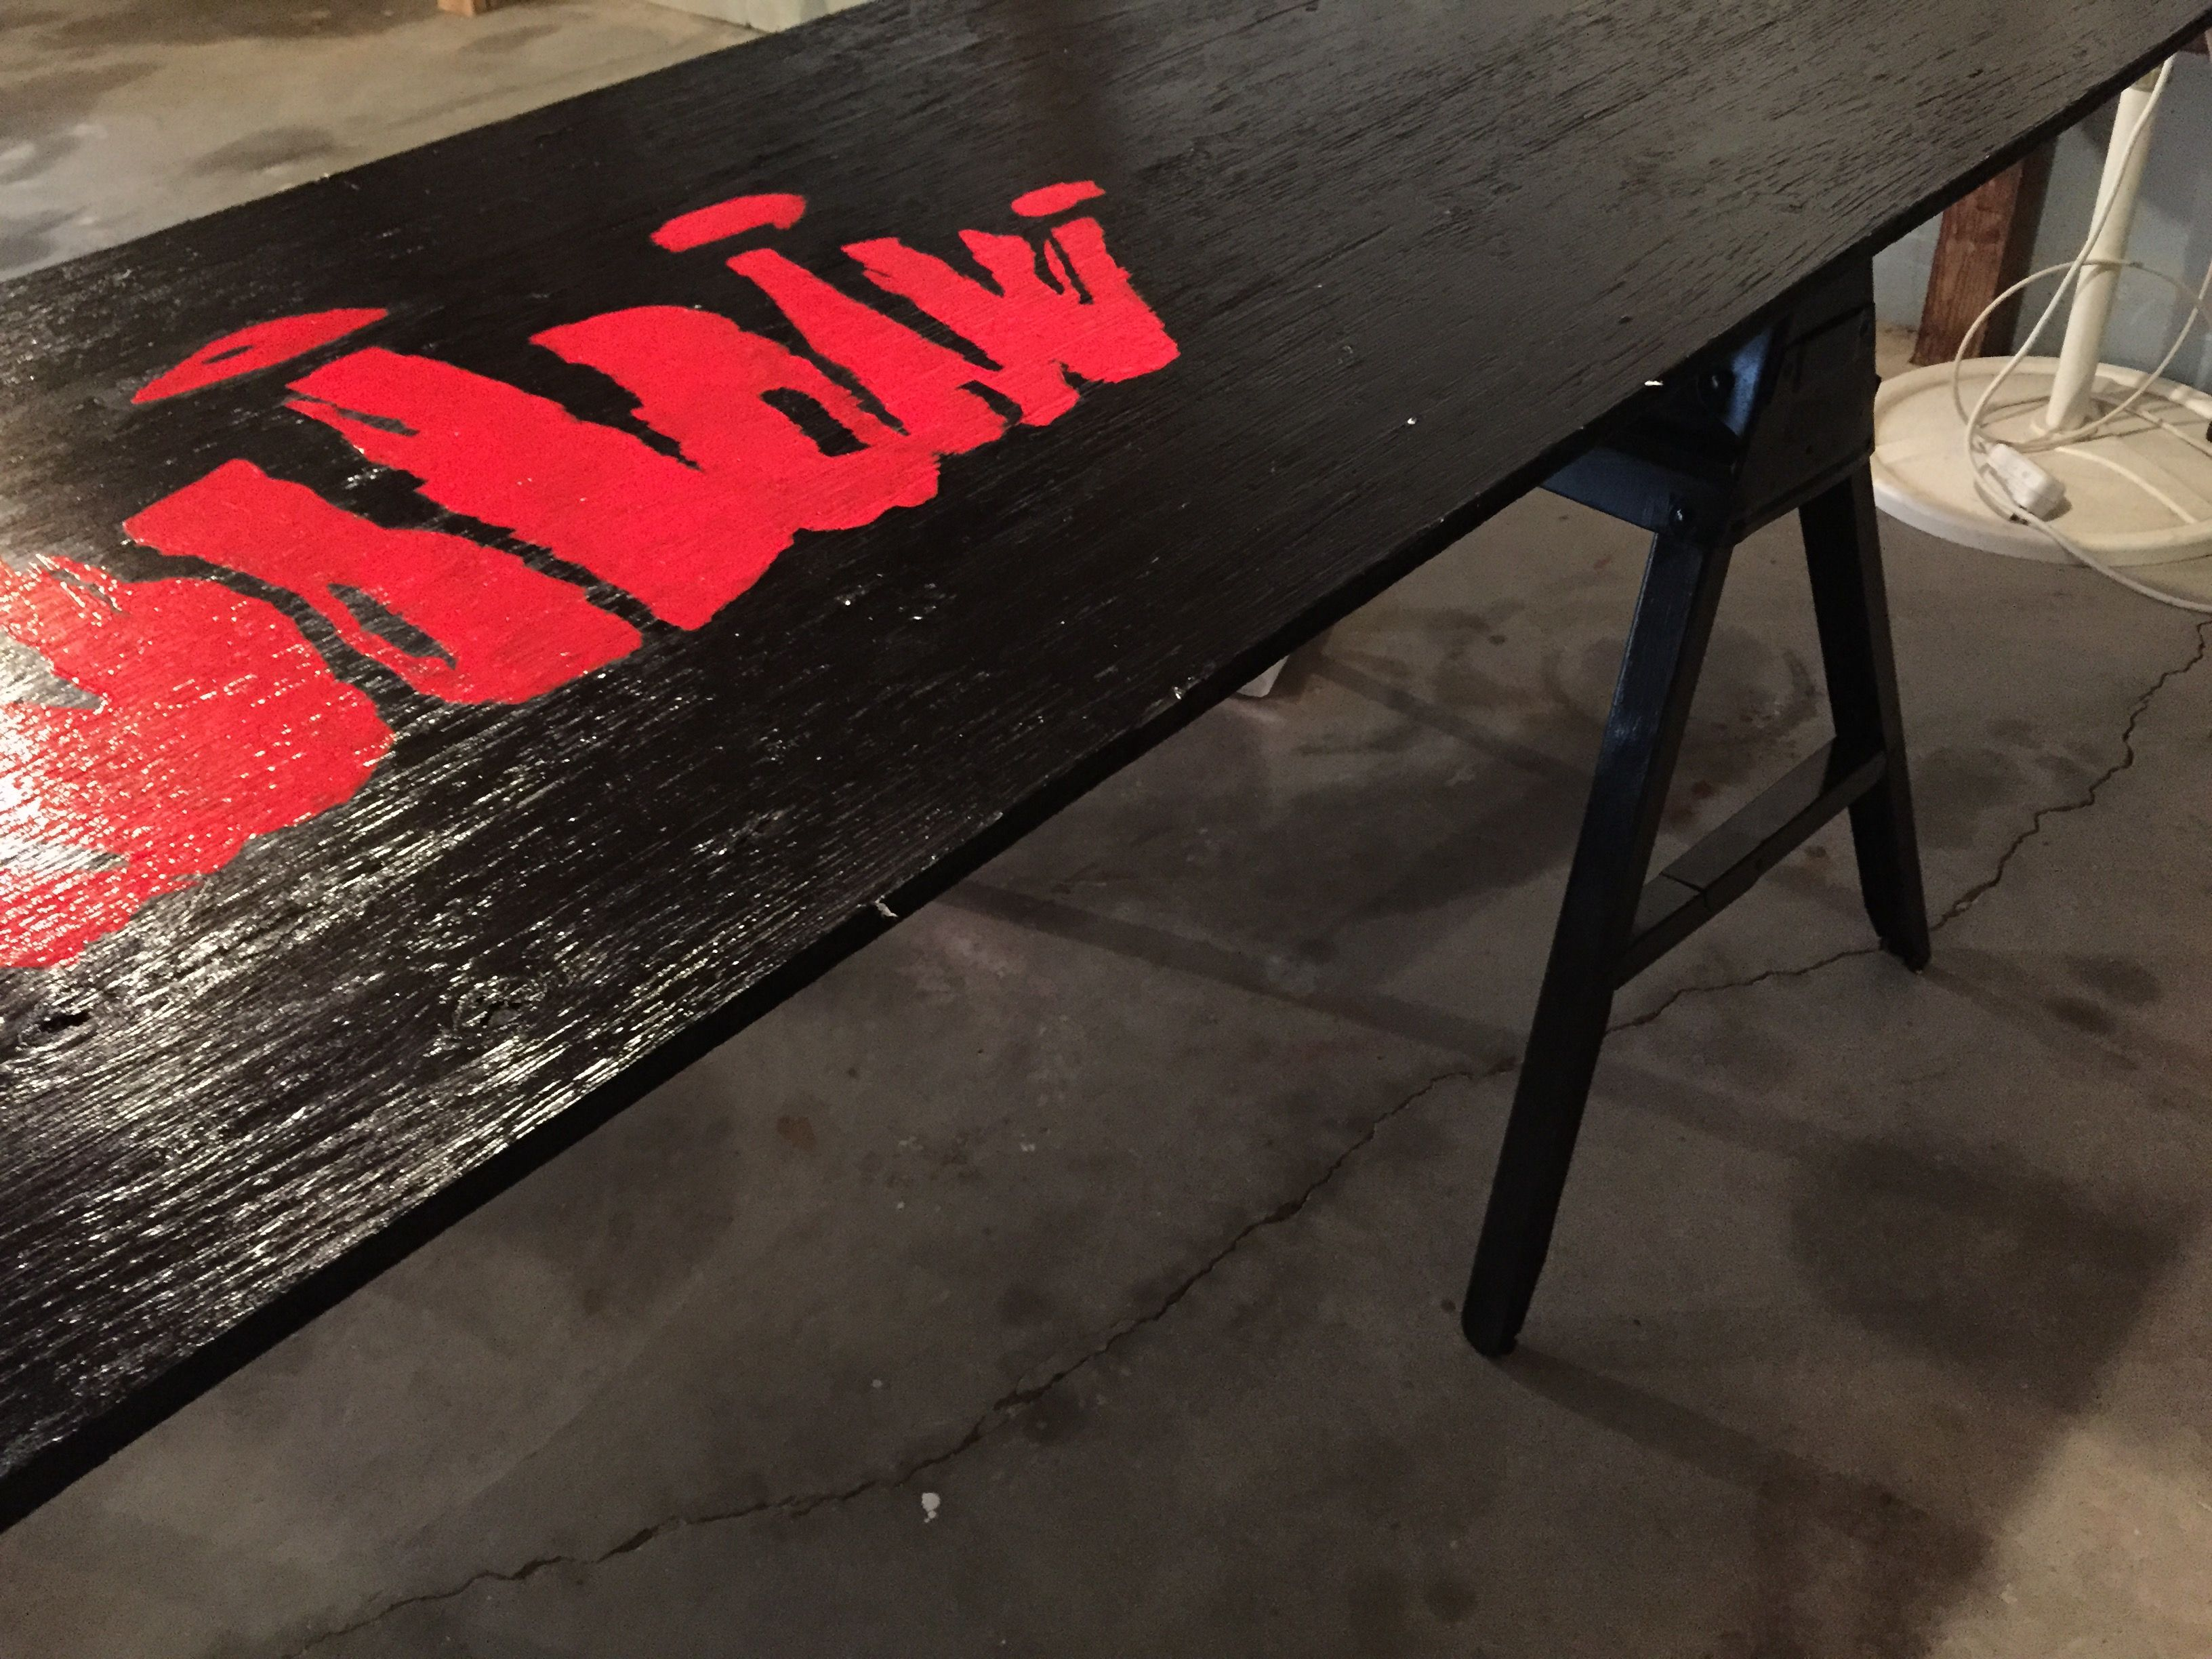 DIY beer pong table out of wood and paint. Saw horses for